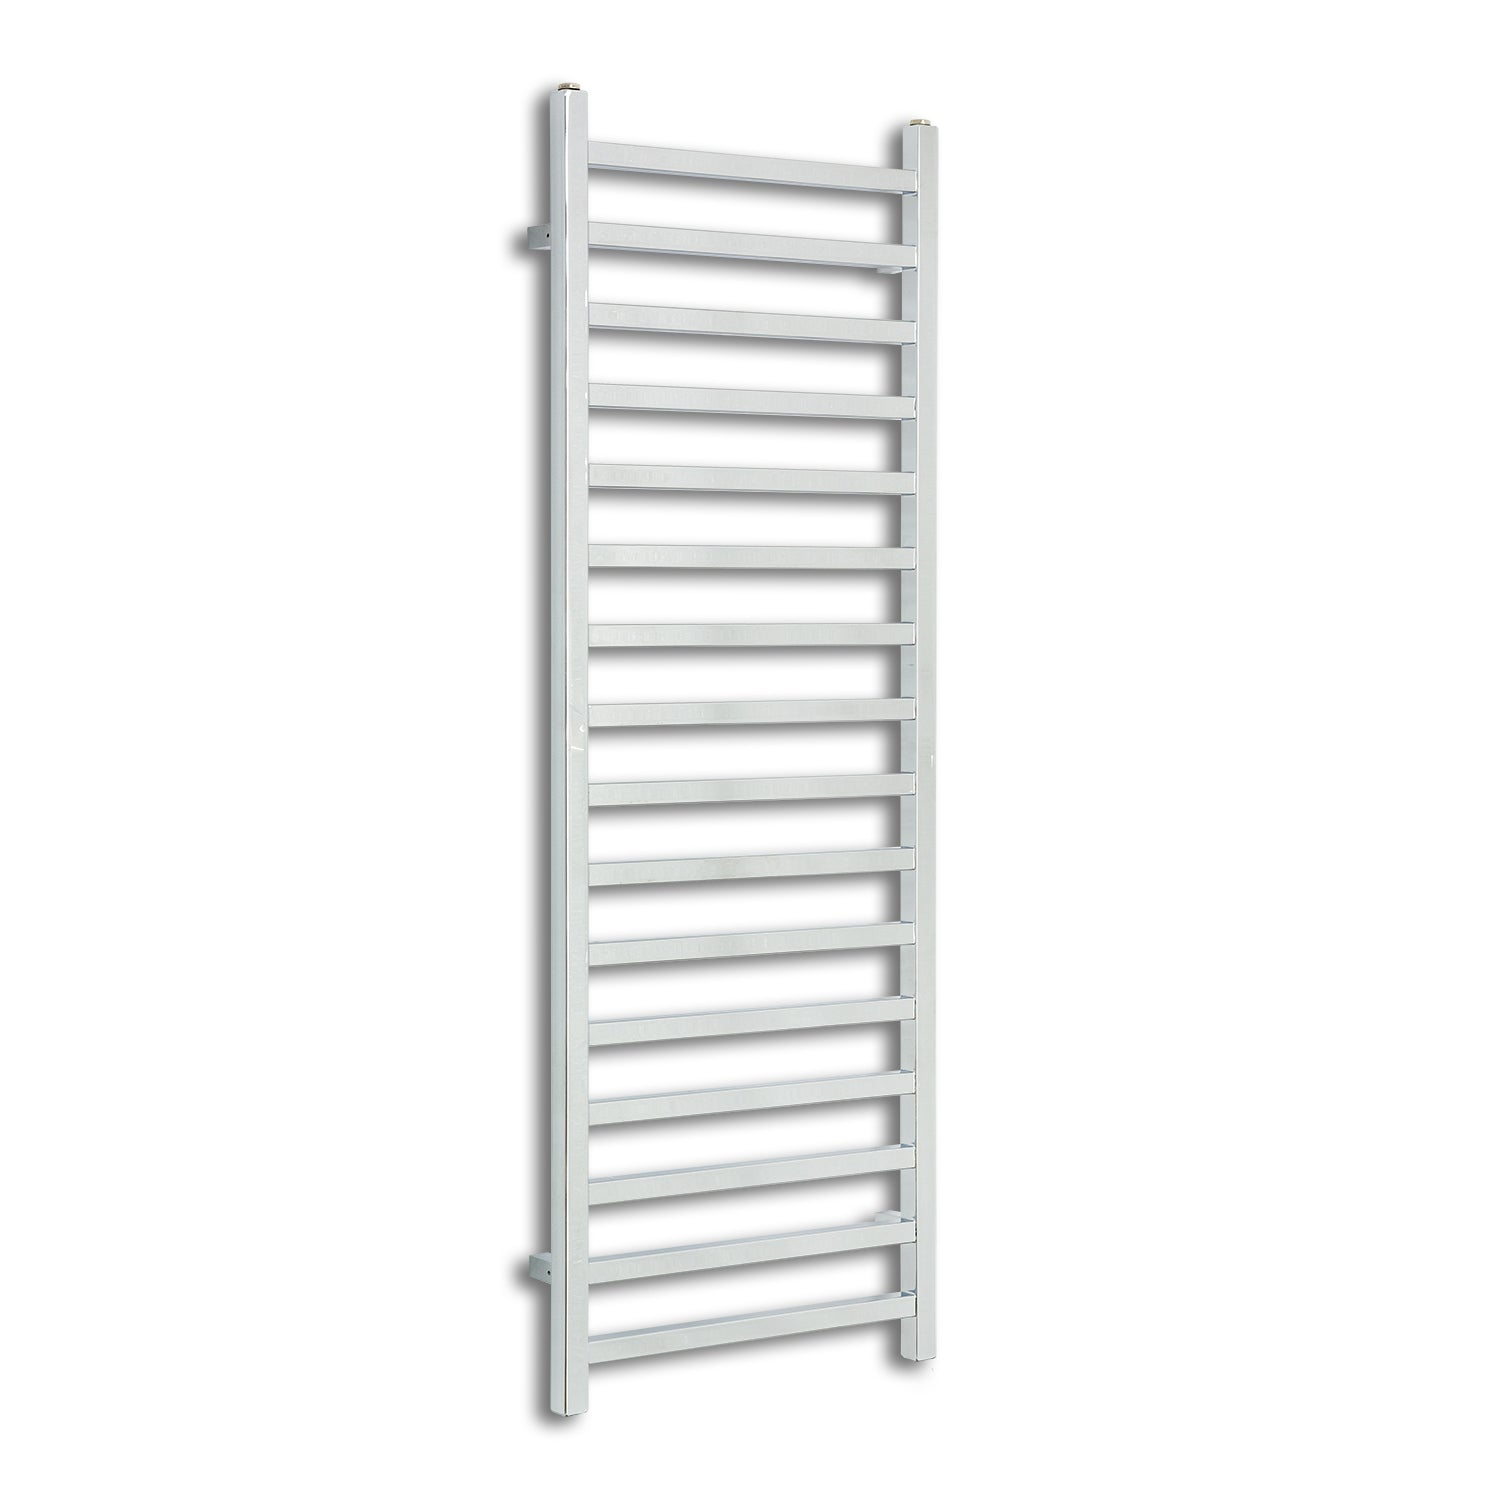 500mm Wide 1400mm High Chrome Towel Rail Radiator